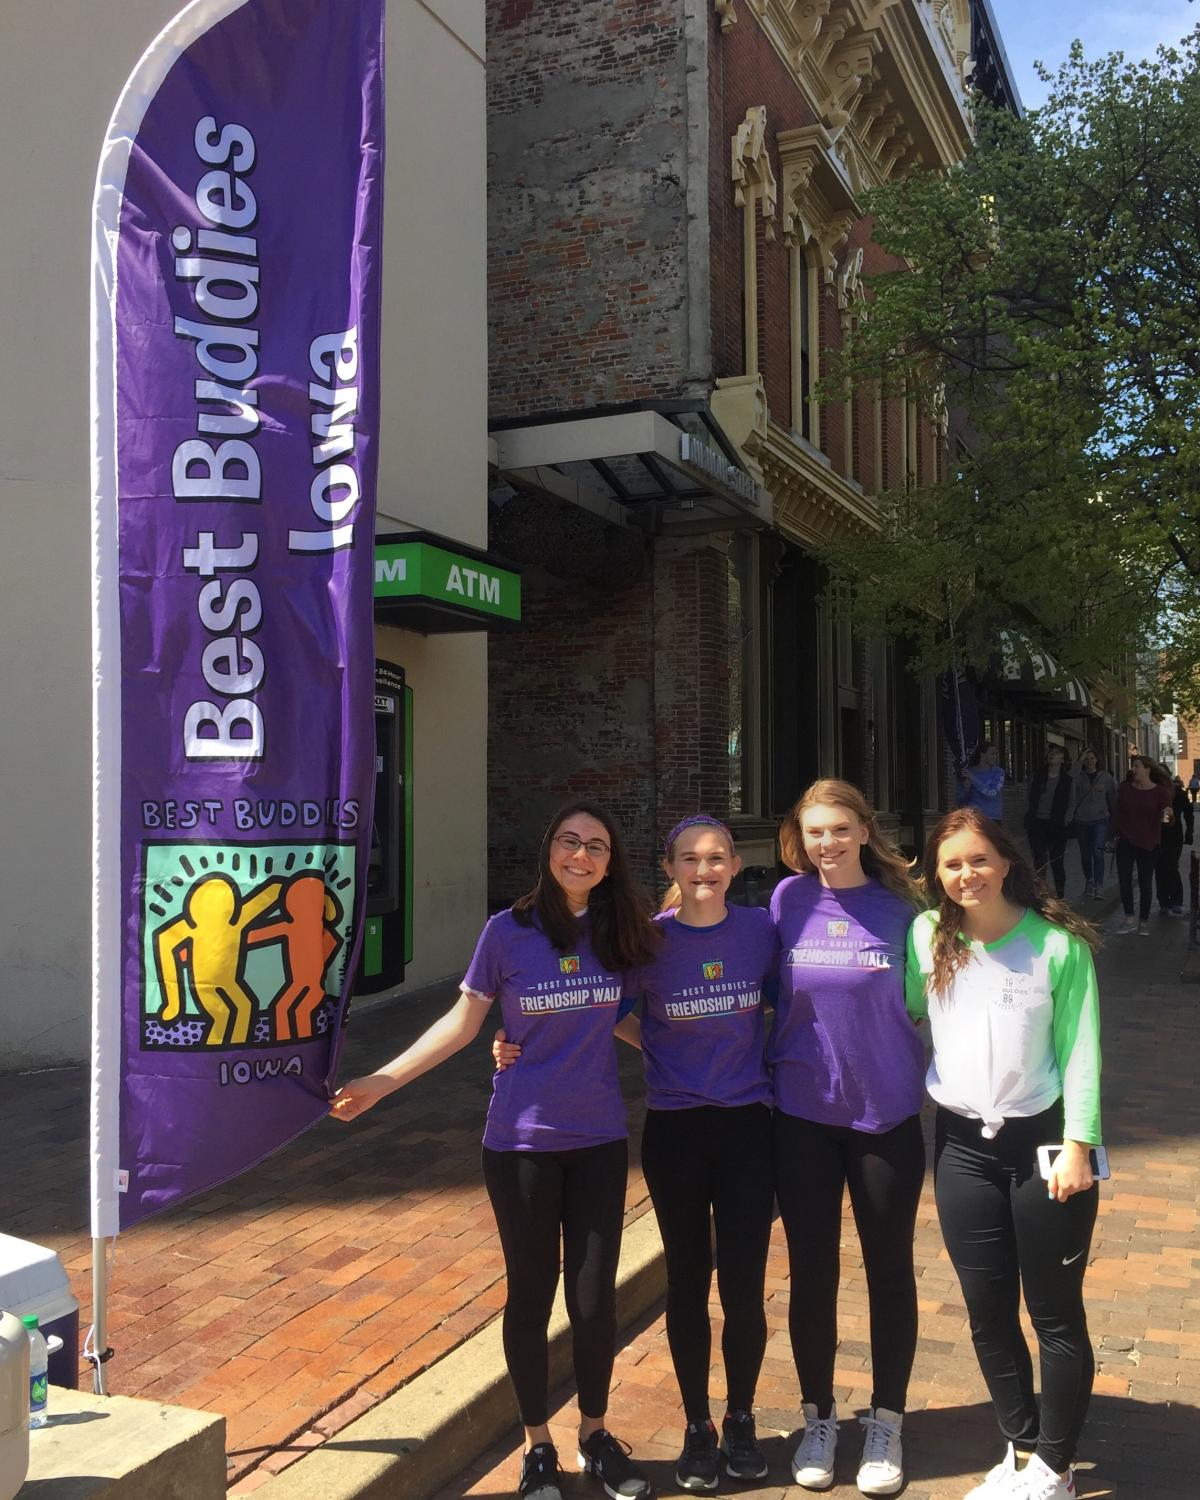 Laurel Haverkamp '20 at the 2016 Best Buddies Friendship Walk downtown Iowa City.